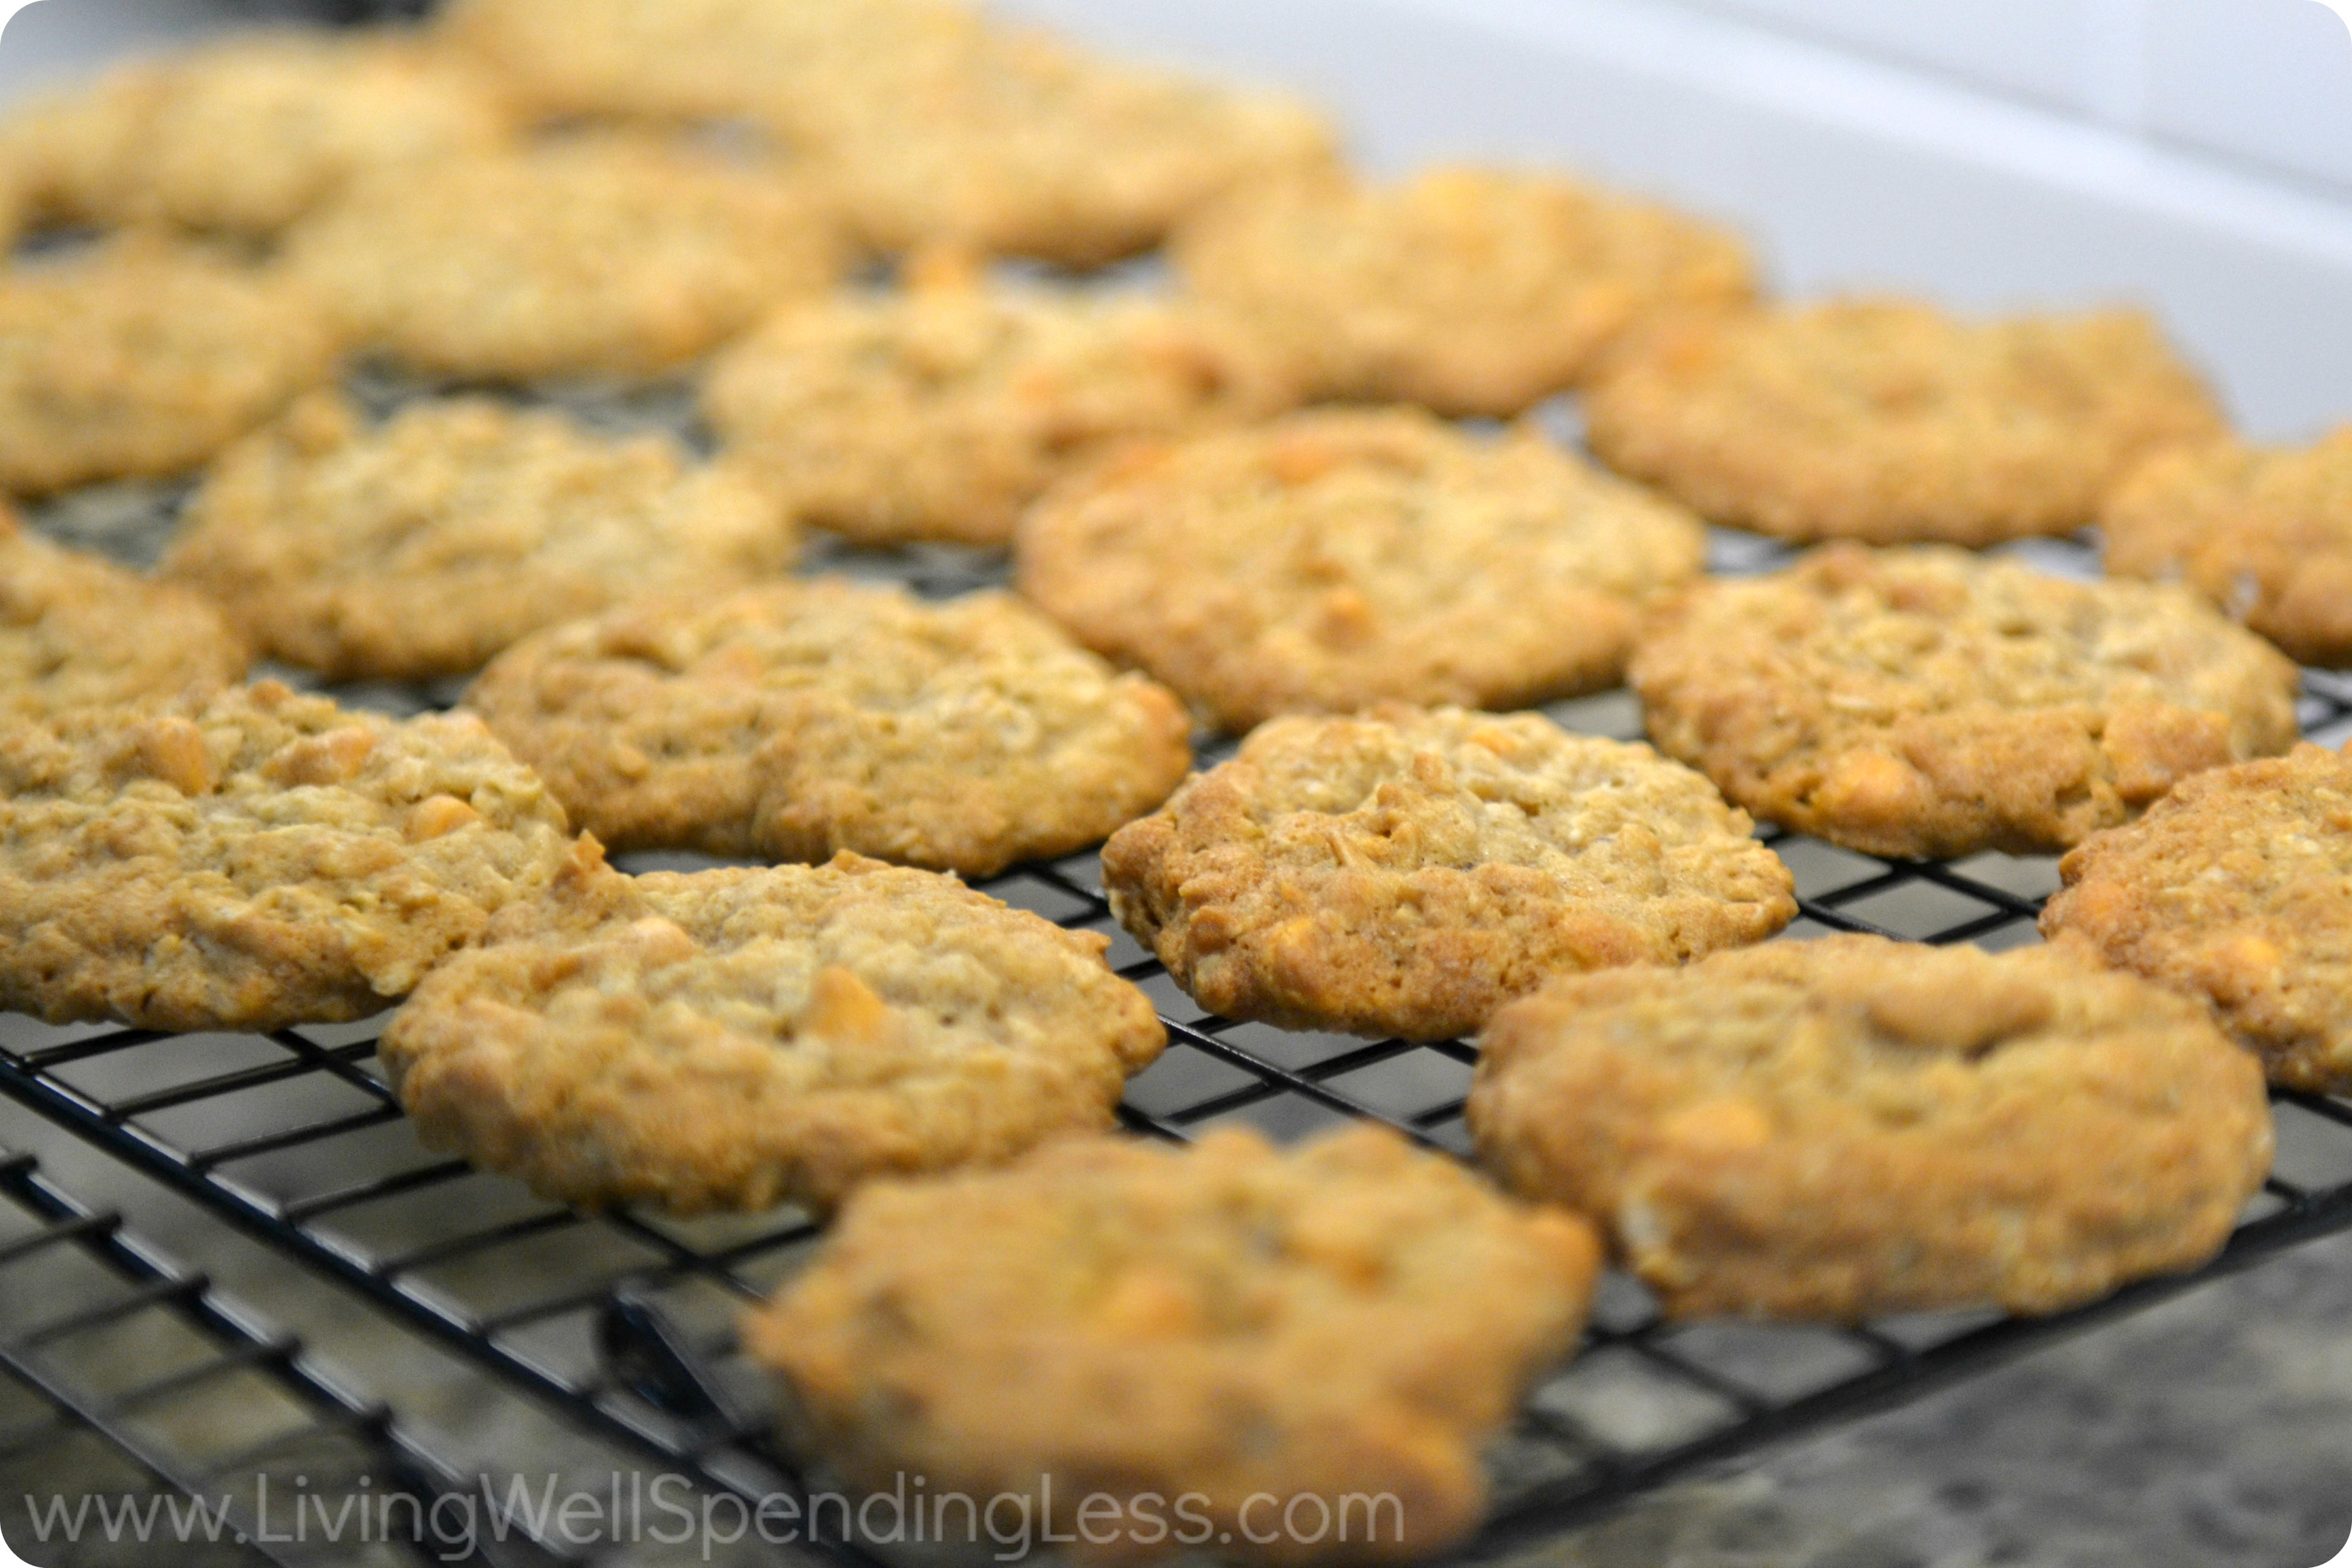 Oatmeal Butterscotch Cookies | DIY Oatmeal Cookie Recipes | Easy Yummy Cooki Recipe | Yummy Oatmeal Butterscotch Cookies | Oatmeal Scotchies